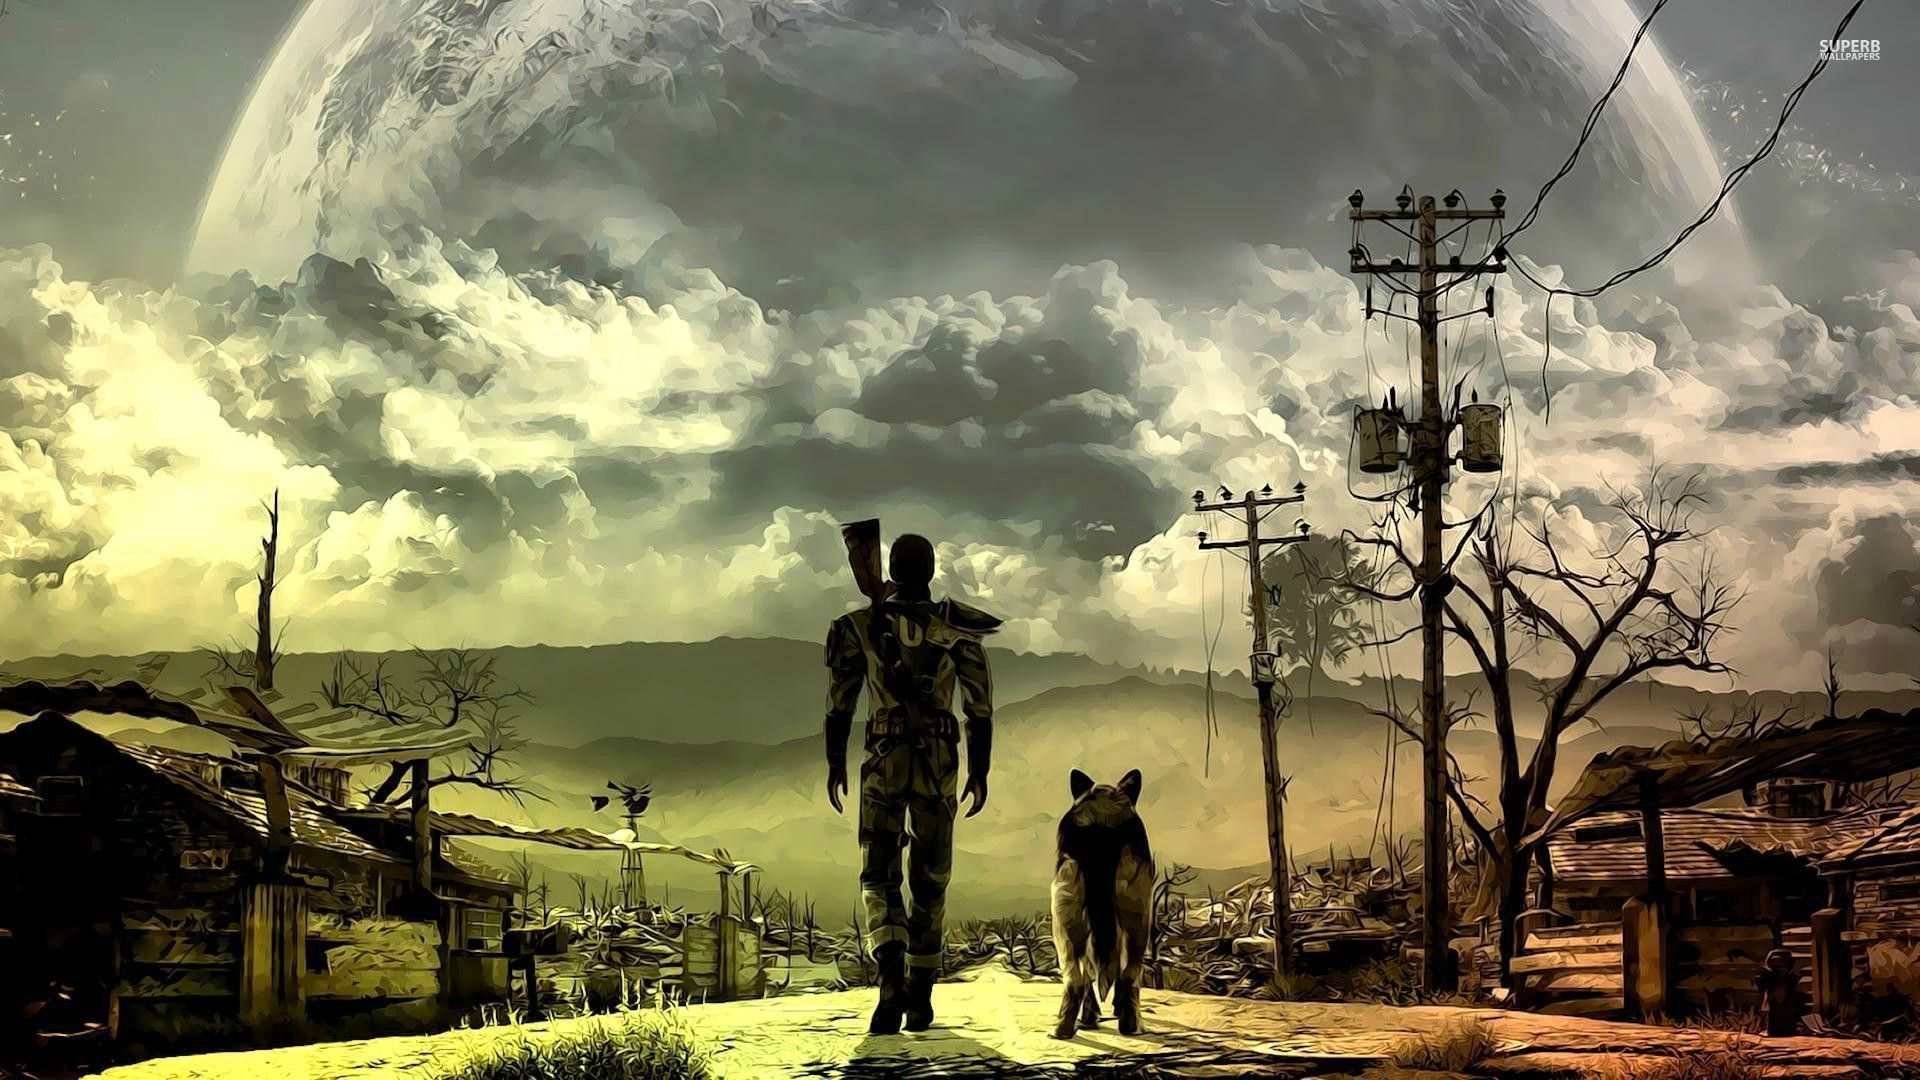 Fallout Wallpapers Wallpaper | HD Wallpapers | Pinterest | Fallout and  Wallpaper